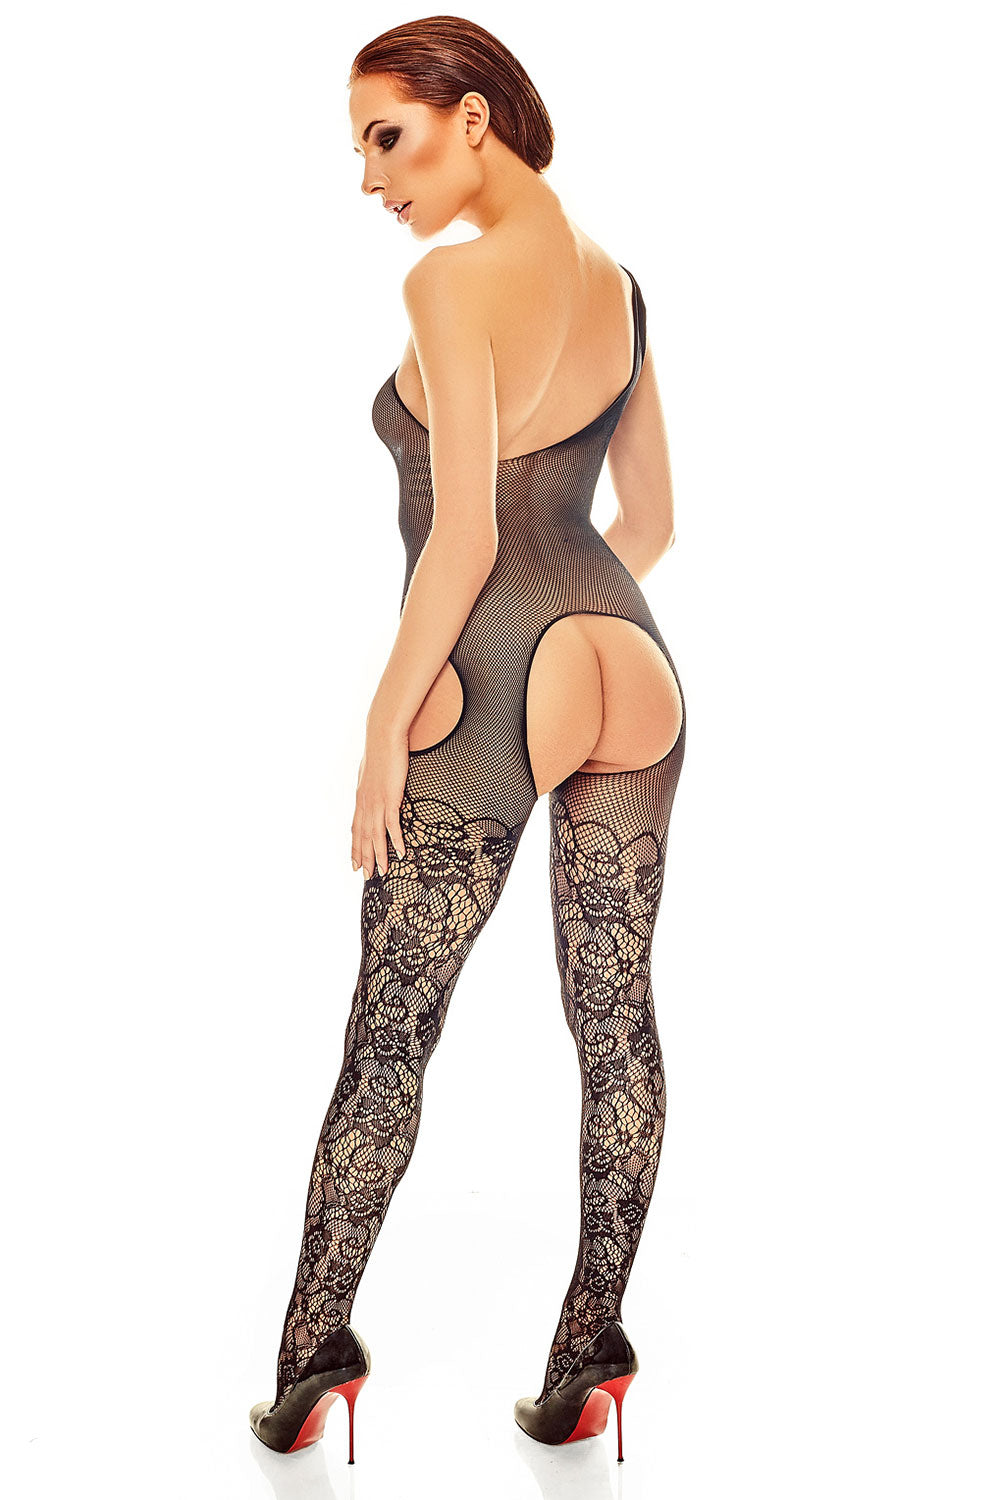 Elodi Sexy Bodystocking - EVOLESCENT